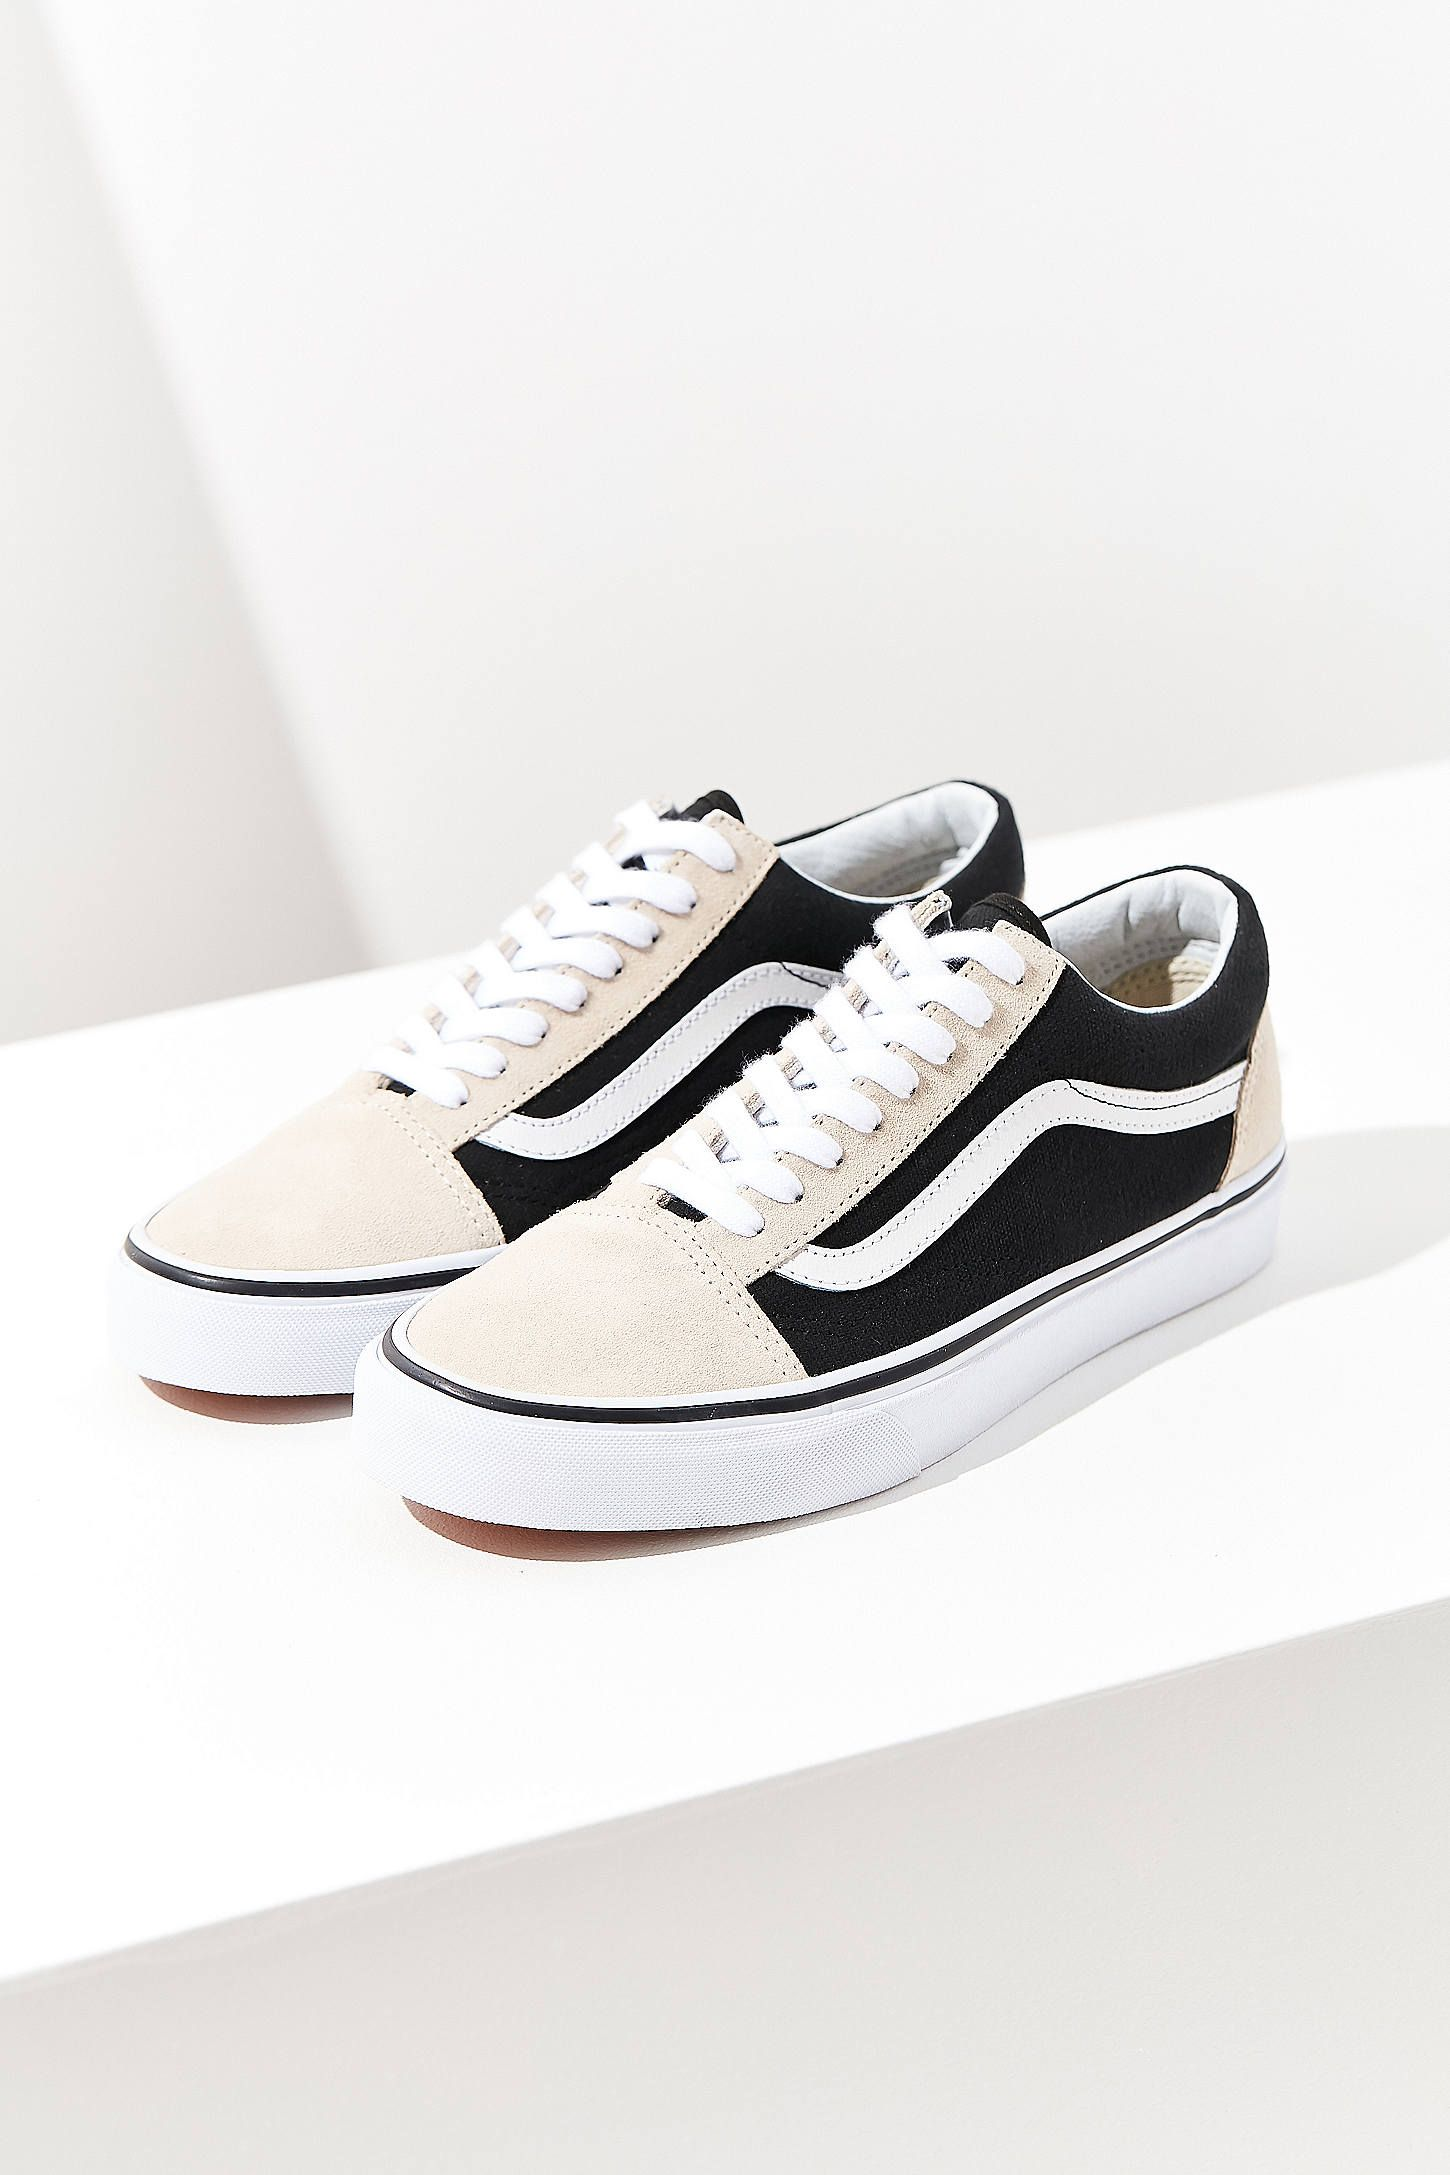 d69243a8254dd6 Shop Vans Classic Old Skool Sneaker at Urban Outfitters today. We carry all  the latest styles